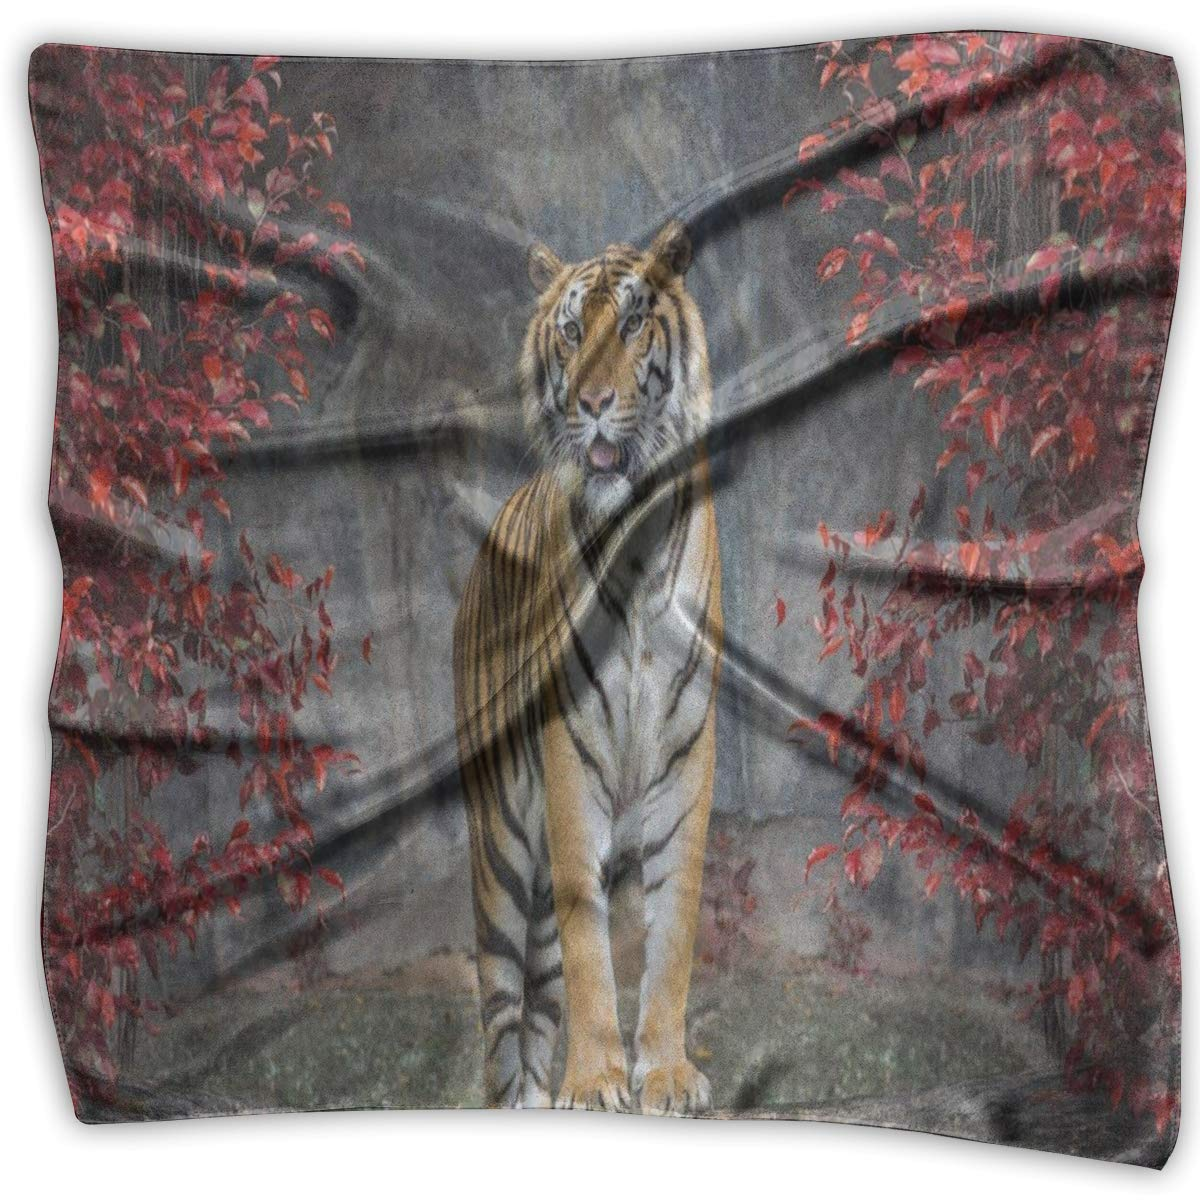 Square Scarf Painting Portrait Of The Tiger Scarves Unisex Neck Head Tie For Men